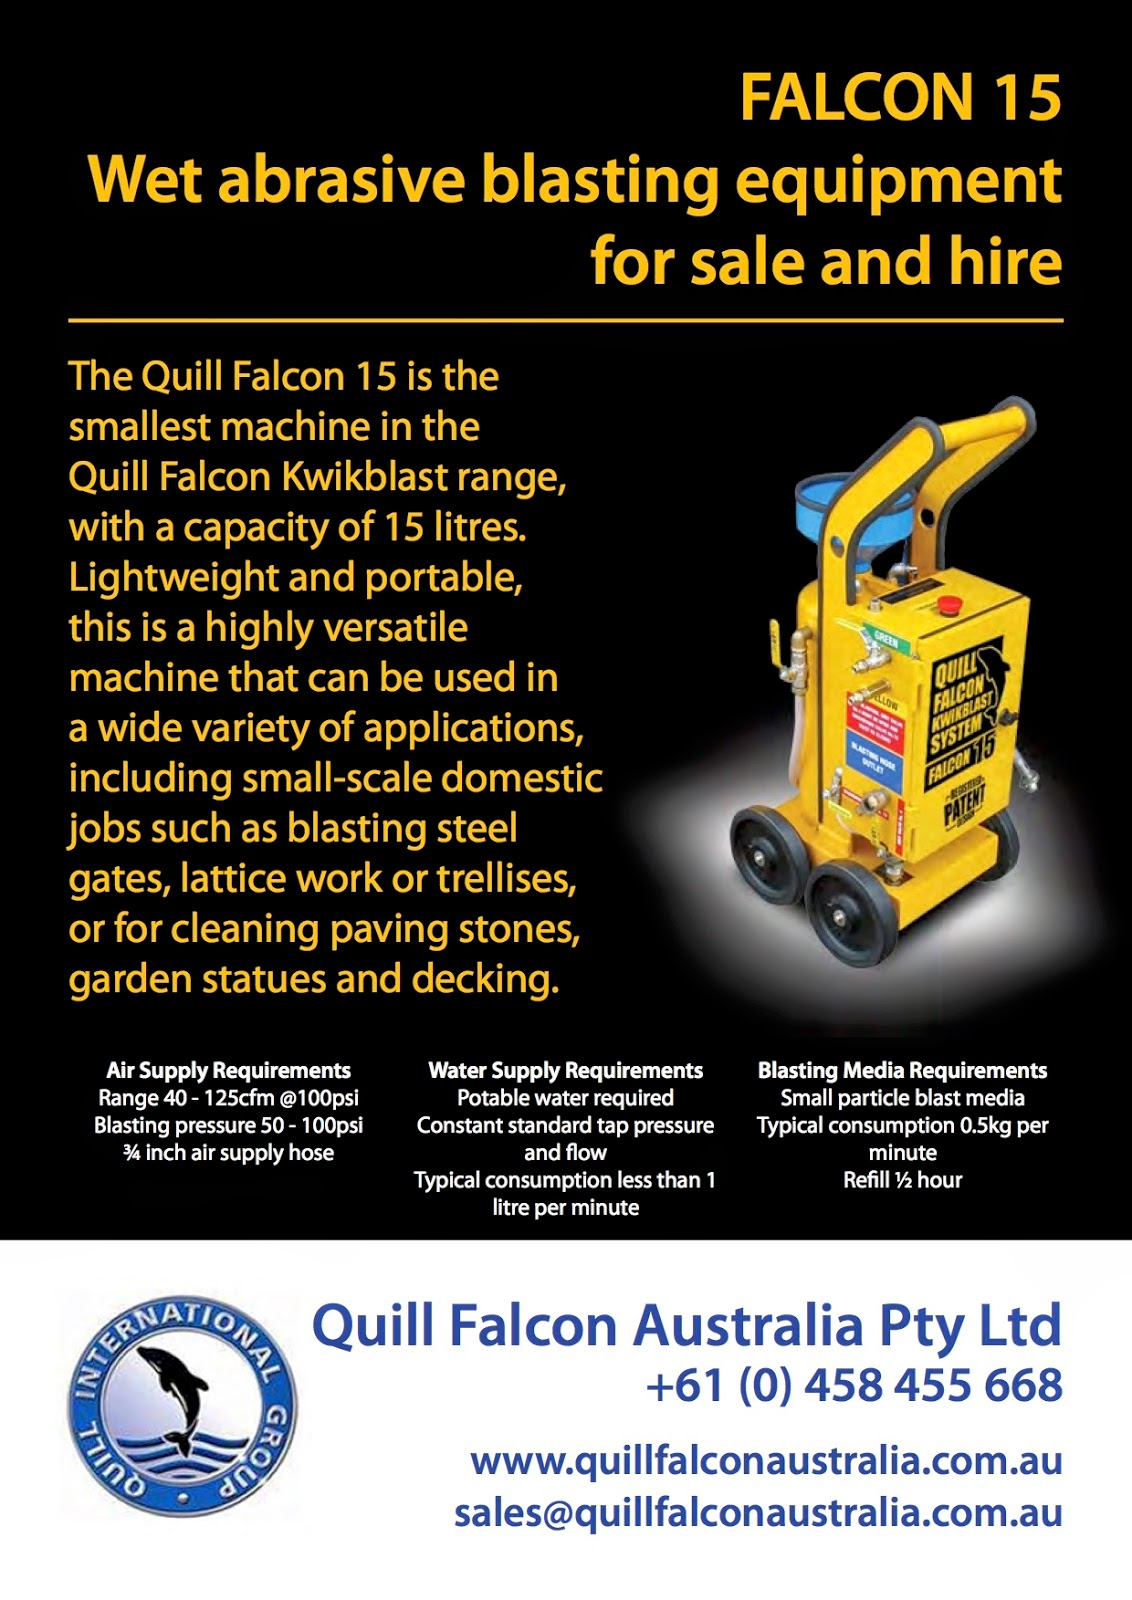 Quill Falcon Australia | Wet Abrasive Blasting Equipment for Sale and Hire